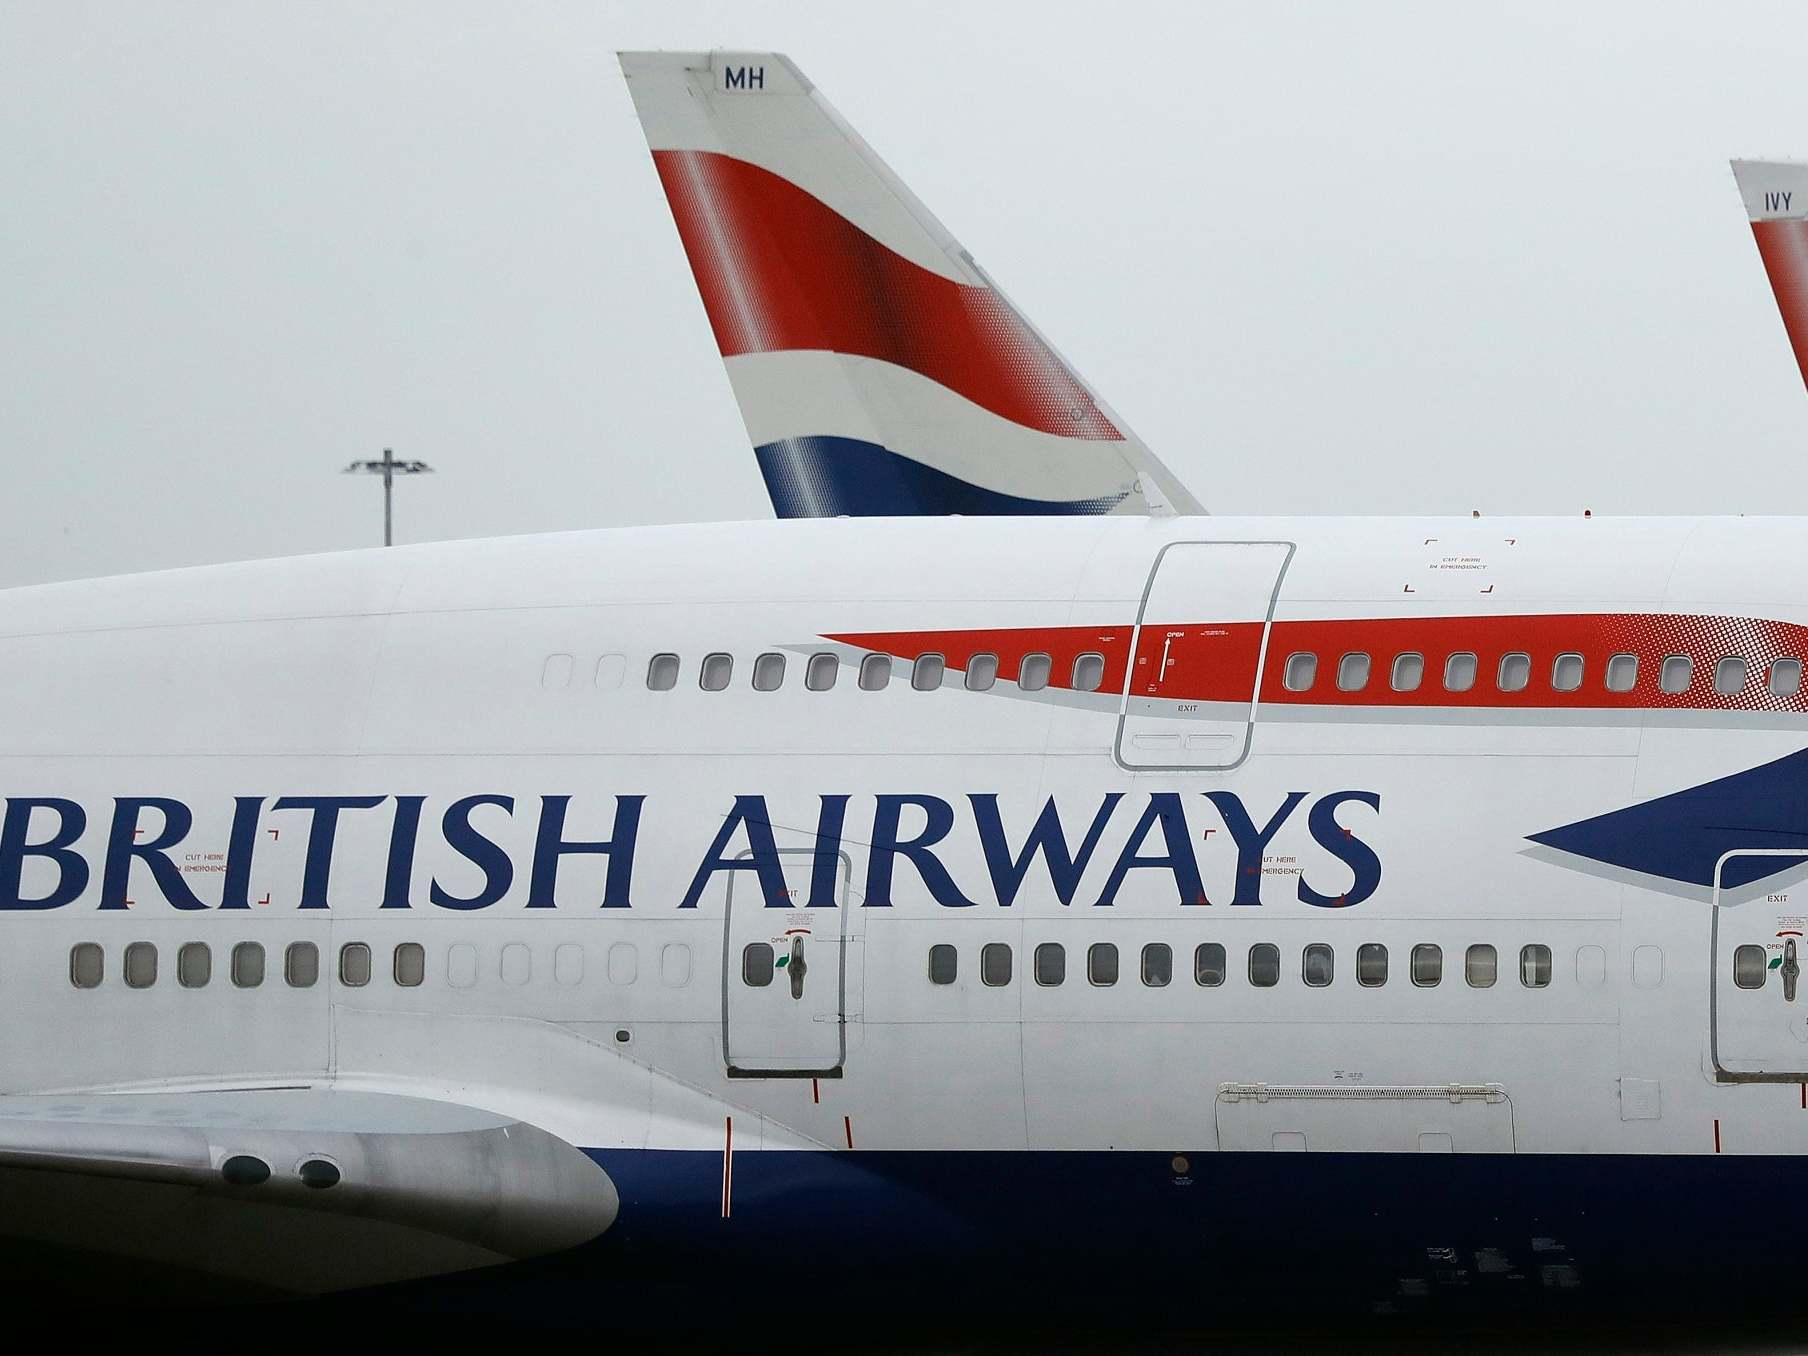 British Airways strike: When will the pilot walkout happen and which flights will be affected?